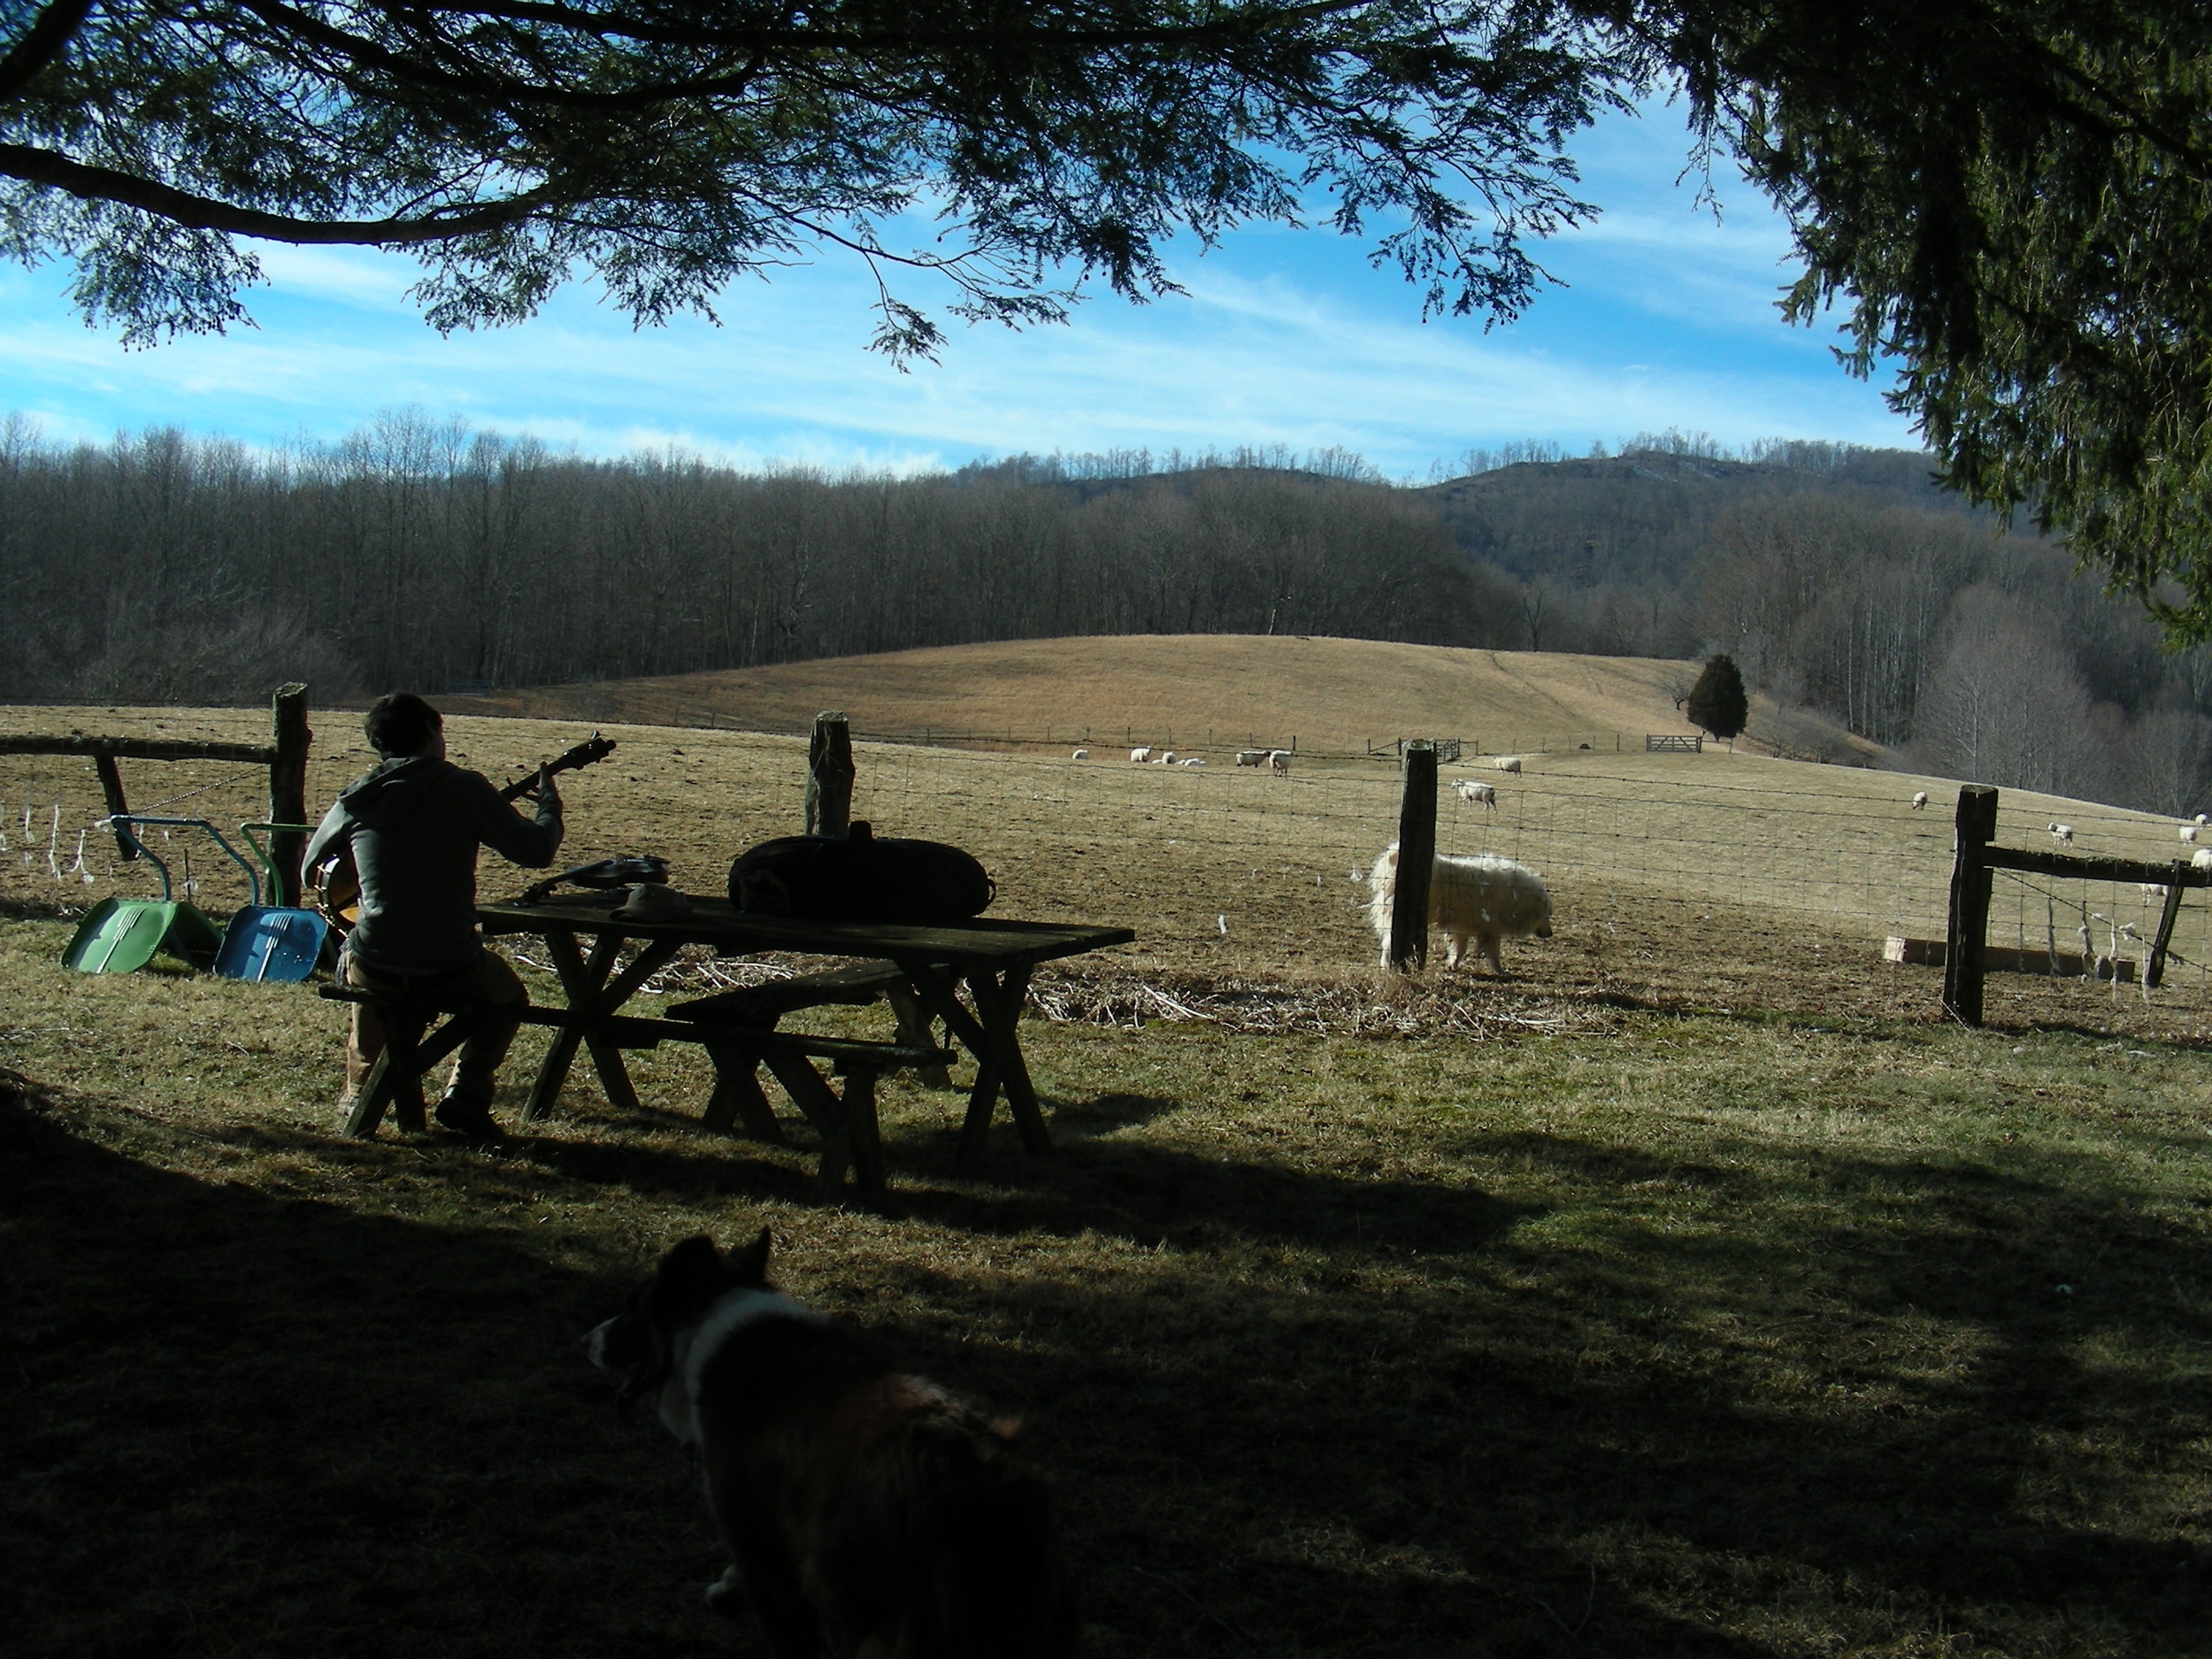 Playing music by the hayfield